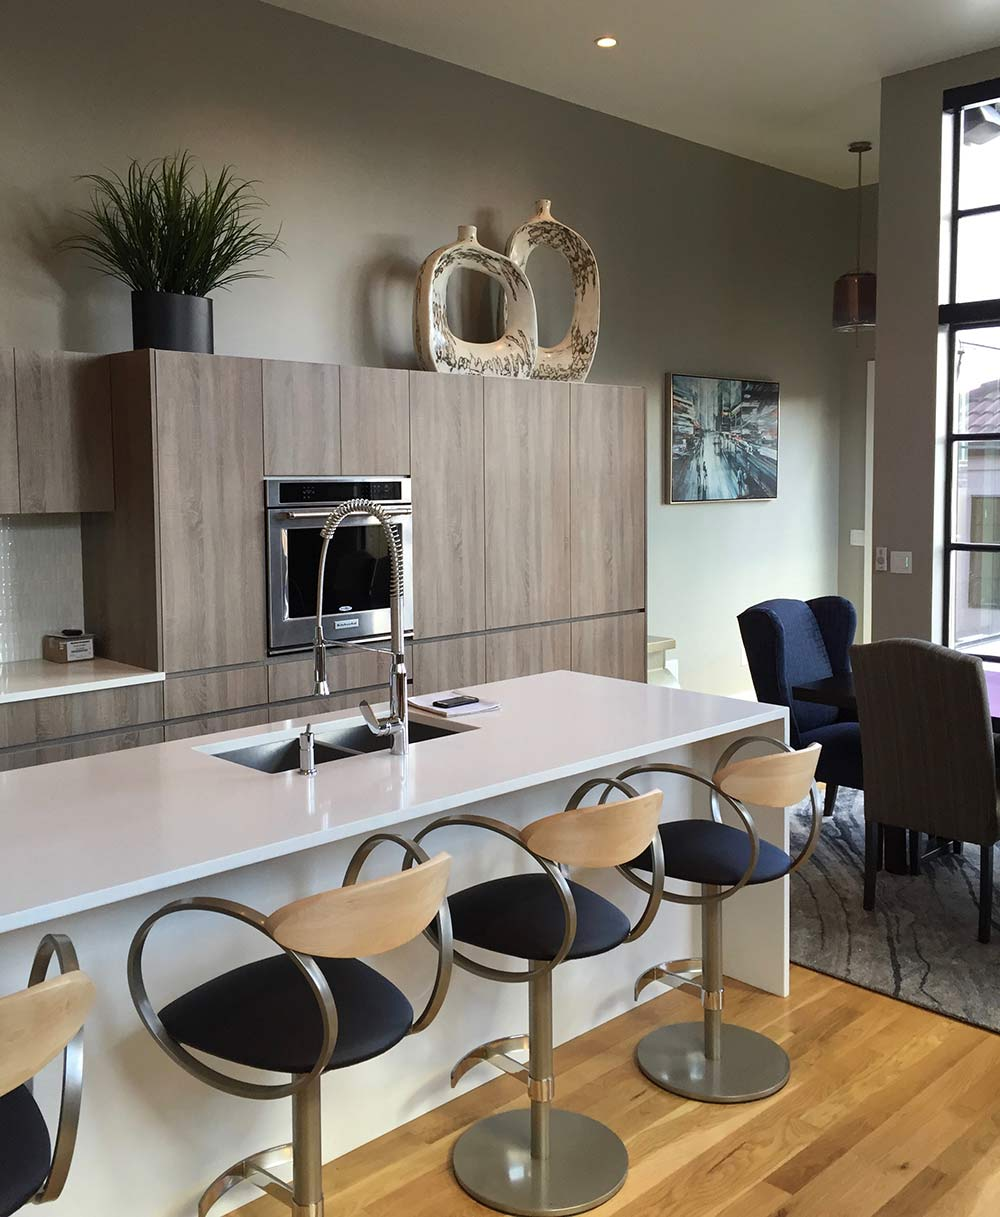 new kitchen with modern accents